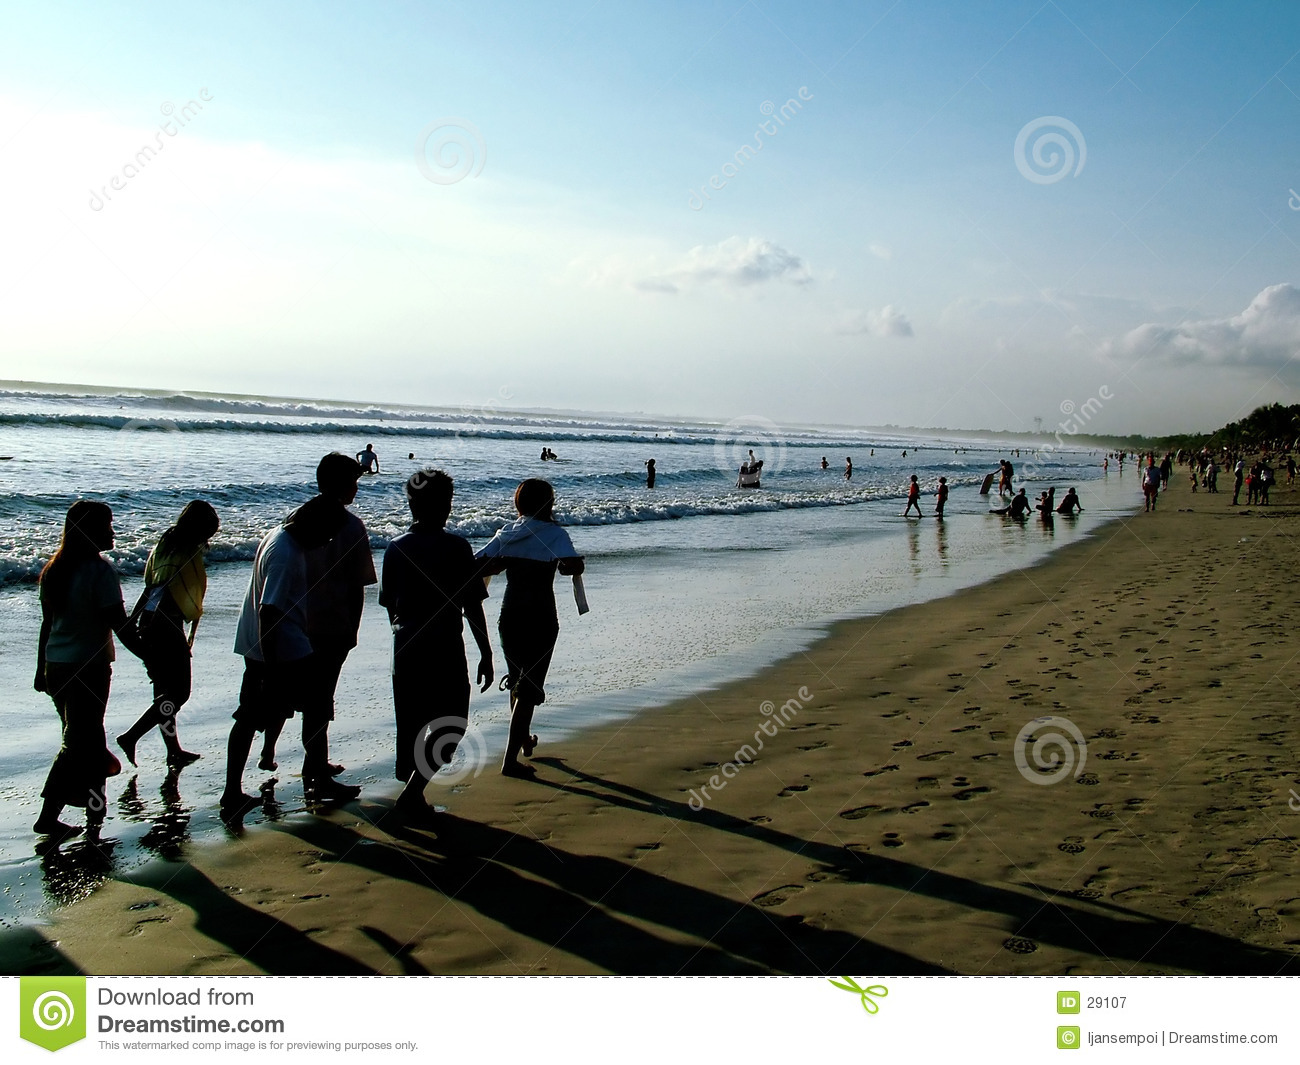 People walking - beach